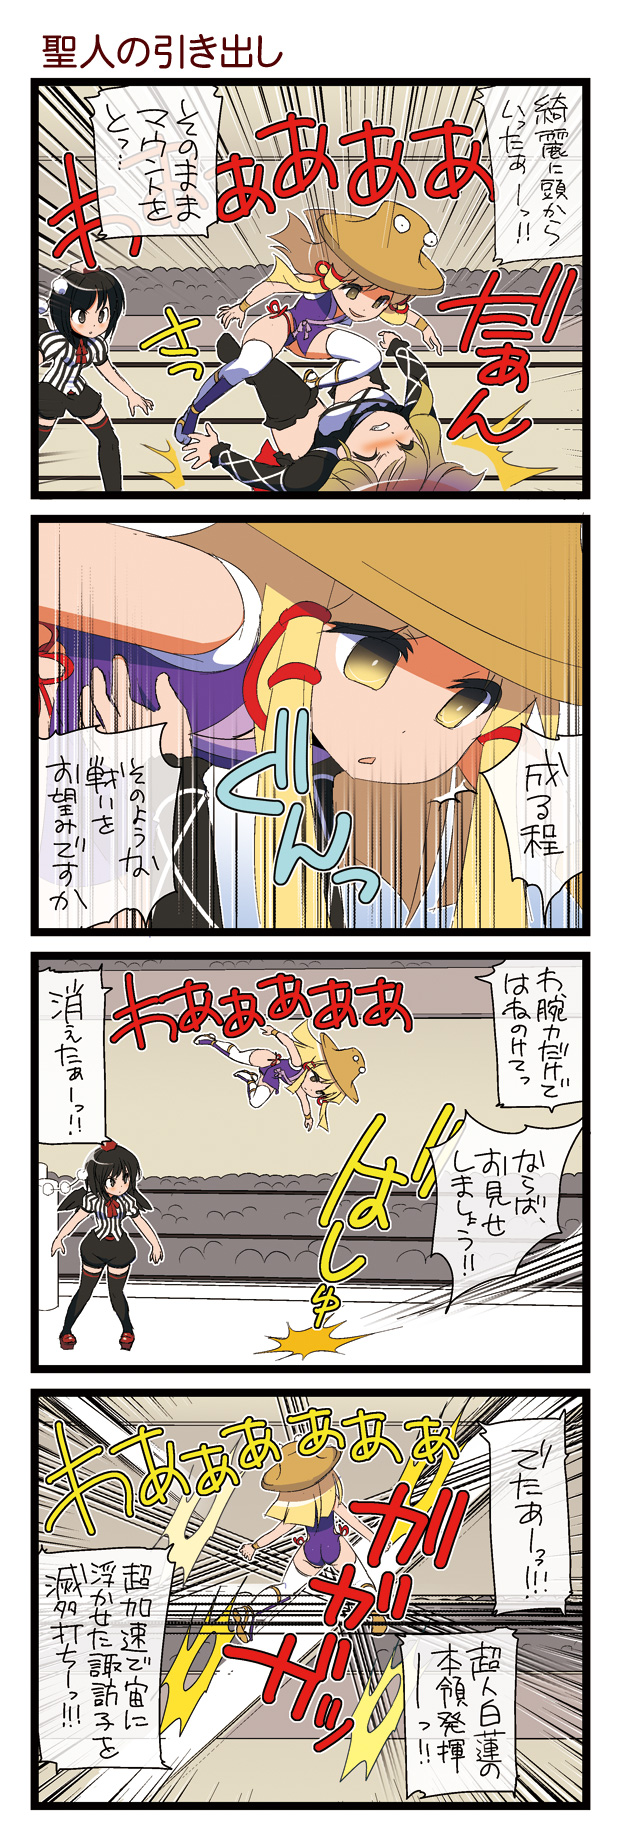 4koma black_hair black_legwear blonde_hair cape comic crazy_smile crowd dei_shirou gradient_hair grey_eyes hair_ribbon hat highres hijiri_byakuren jumping long_hair lying moriya_suwako multicolored_hair multiple_girls on_back ribbon shameimaru_aya shirt short_hair shorts thigh-highs thighhighs tokin_hat touhou translated translation_request white_legwear wrestling wrestling_outfit wrestling_ring yellow_eyes zettai_ryouiki